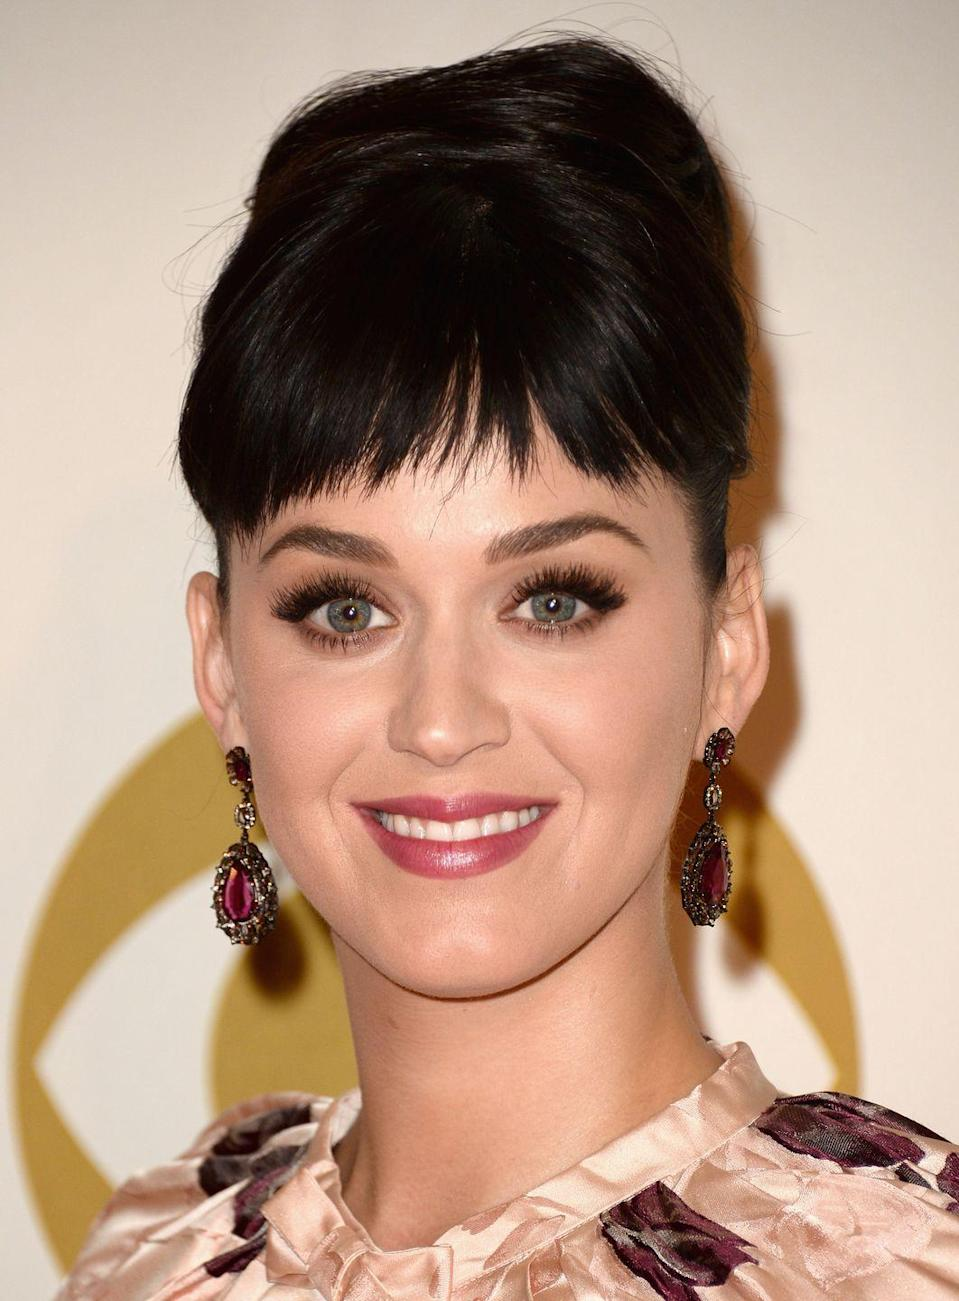 """<p>Get that Katy Perry look — perfect for weddings, special occasions, and more — with short, cute bangs and <a href=""""https://www.goodhousekeeping.com/beauty/hair/advice/g5172/wedding-updos/"""" rel=""""nofollow noopener"""" target=""""_blank"""" data-ylk=""""slk:simple updo"""" class=""""link rapid-noclick-resp"""">simple updo</a>.</p><p><strong>RELATED: </strong><a href=""""https://www.goodhousekeeping.com/beauty/hair/tips/g1646/wedding-guest-hair-styles/"""" rel=""""nofollow noopener"""" target=""""_blank"""" data-ylk=""""slk:25 Easy Wedding Guest Hairstyles for Every Dress Code"""" class=""""link rapid-noclick-resp"""">25 Easy Wedding Guest Hairstyles for Every Dress Code</a></p>"""